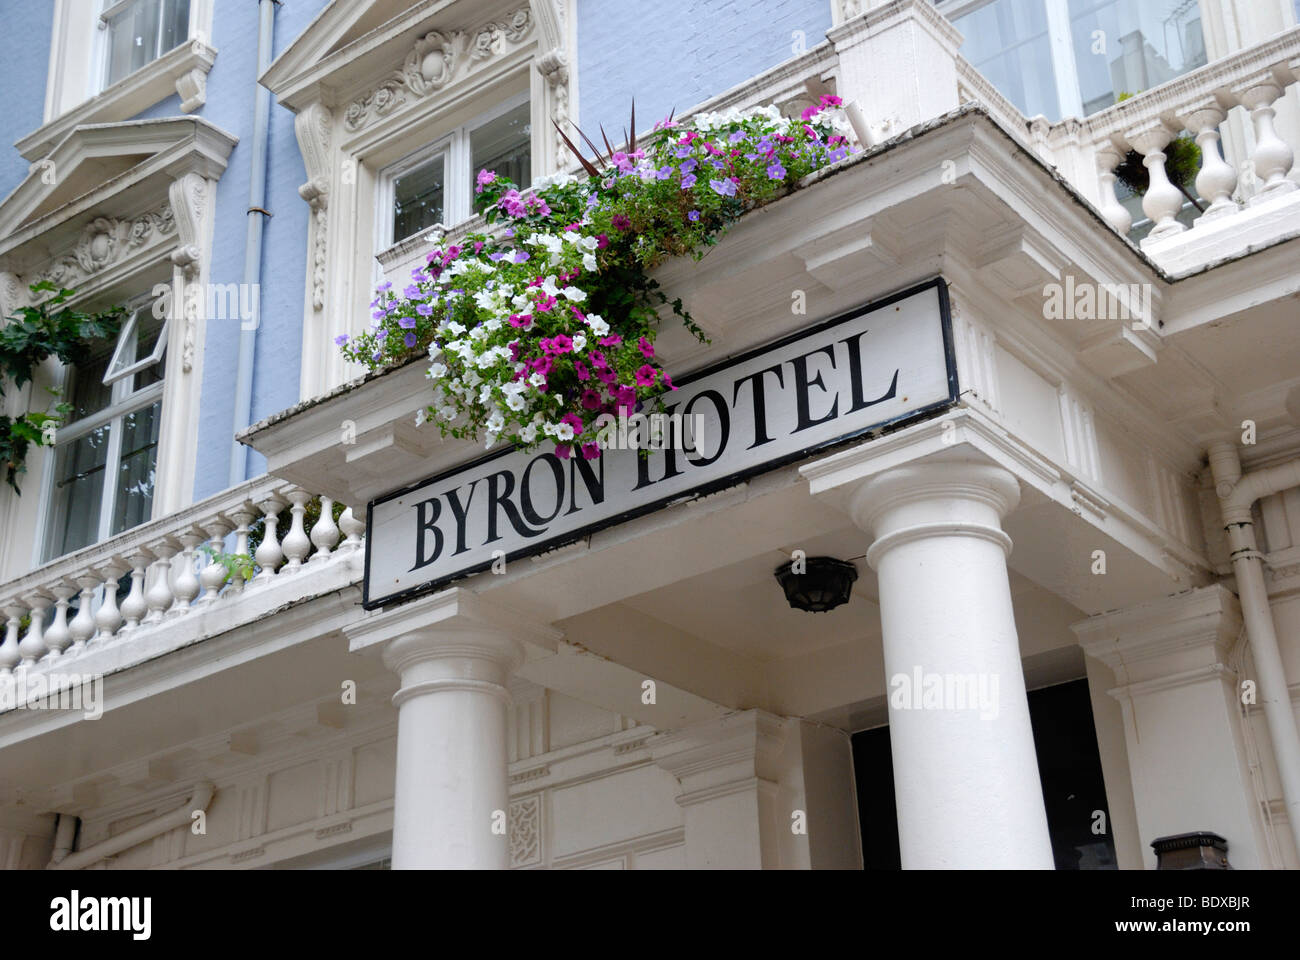 The byron hotel queensborough terrace london w2 england for Queensborough terrace